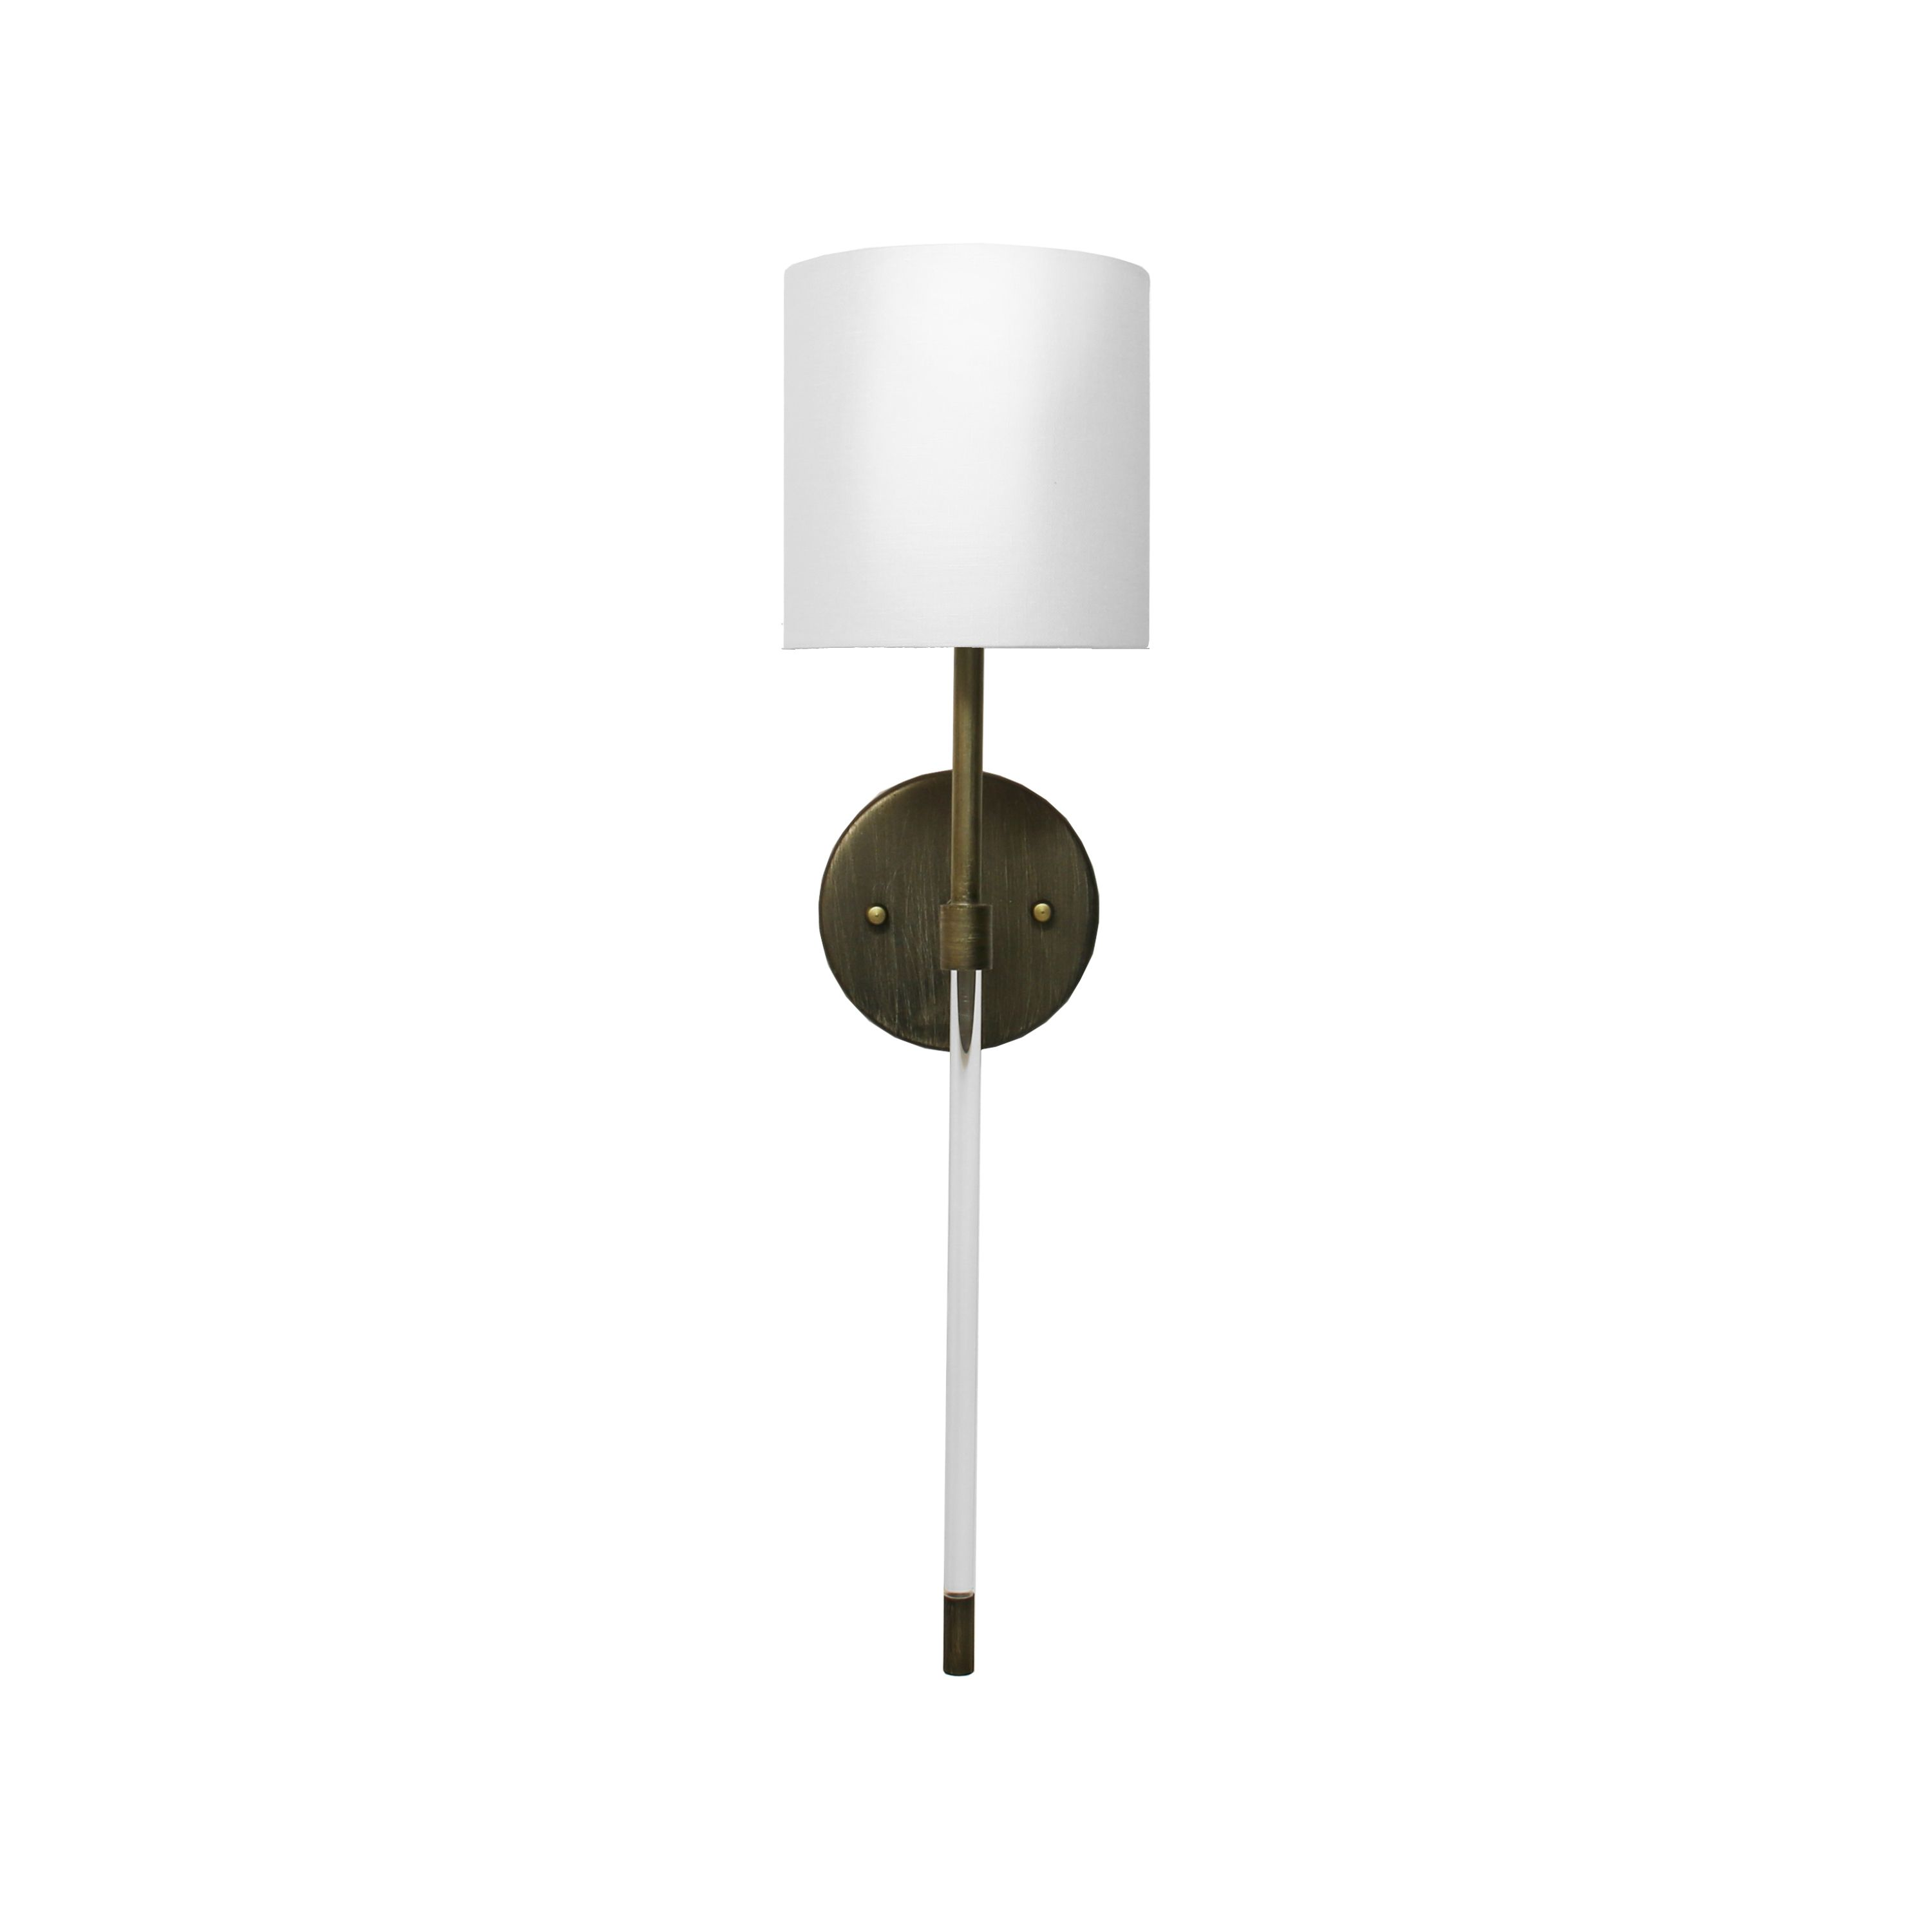 Acrylic Sconce with White Linen Shade in Bronze